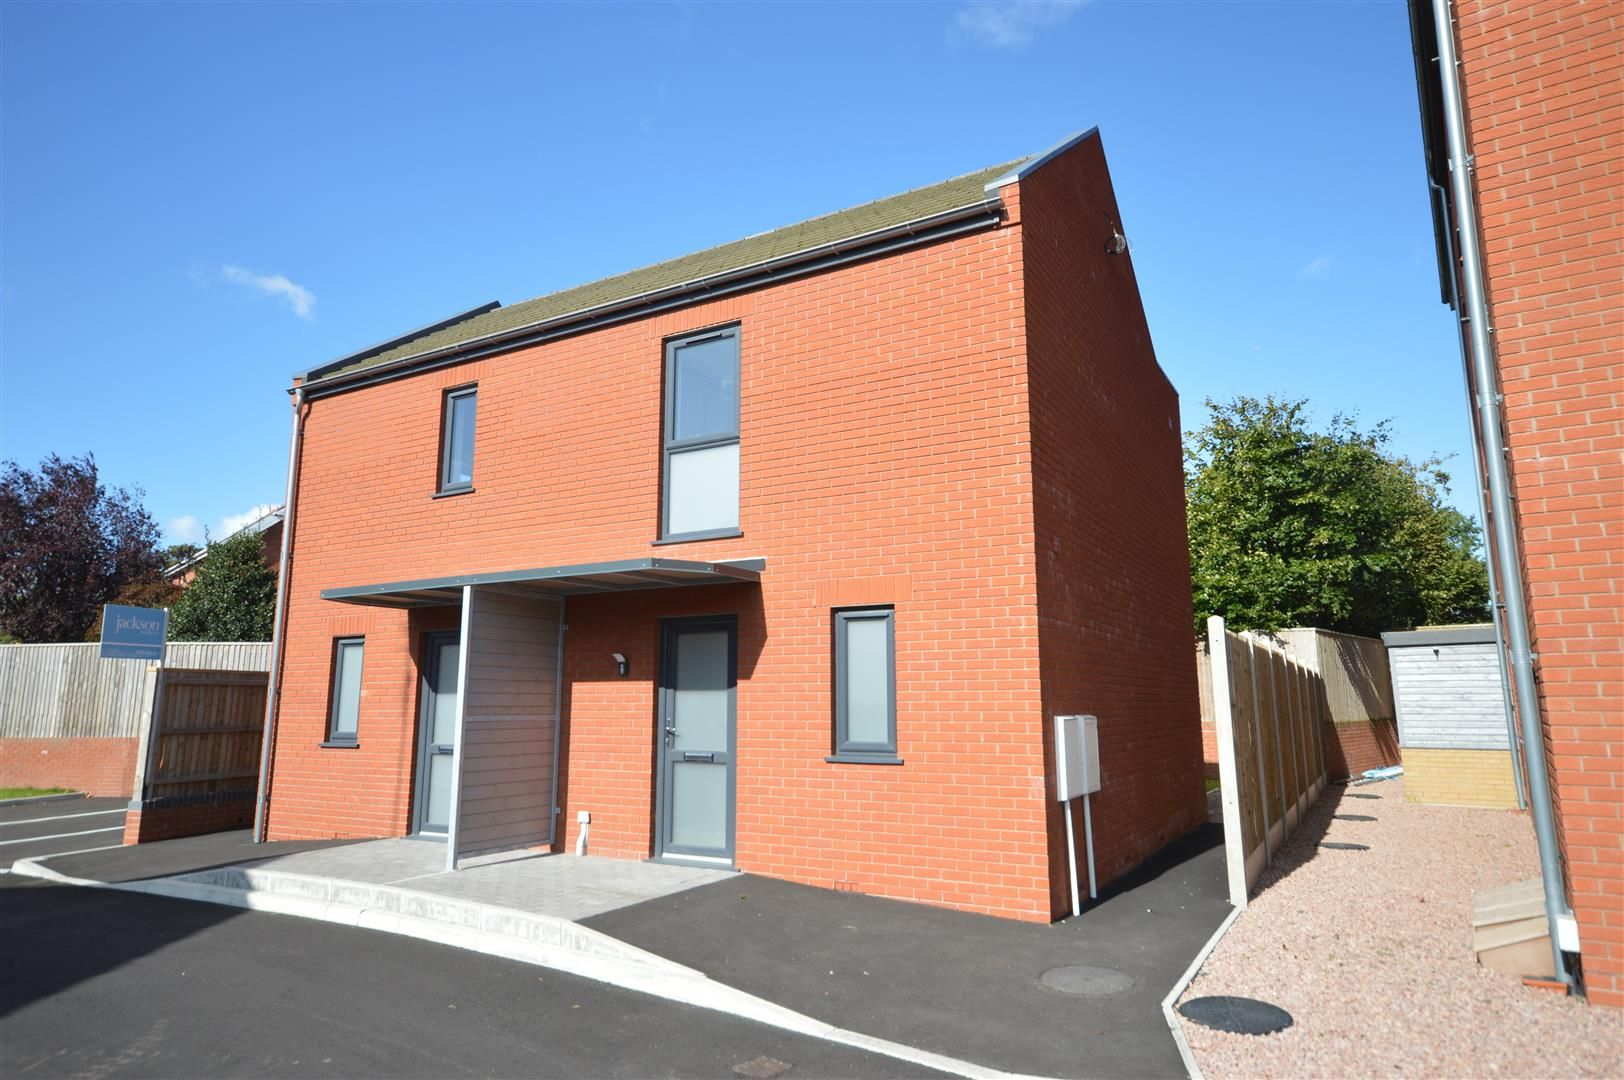 2 bed semi-detached for sale in Leominster - Property Image 1